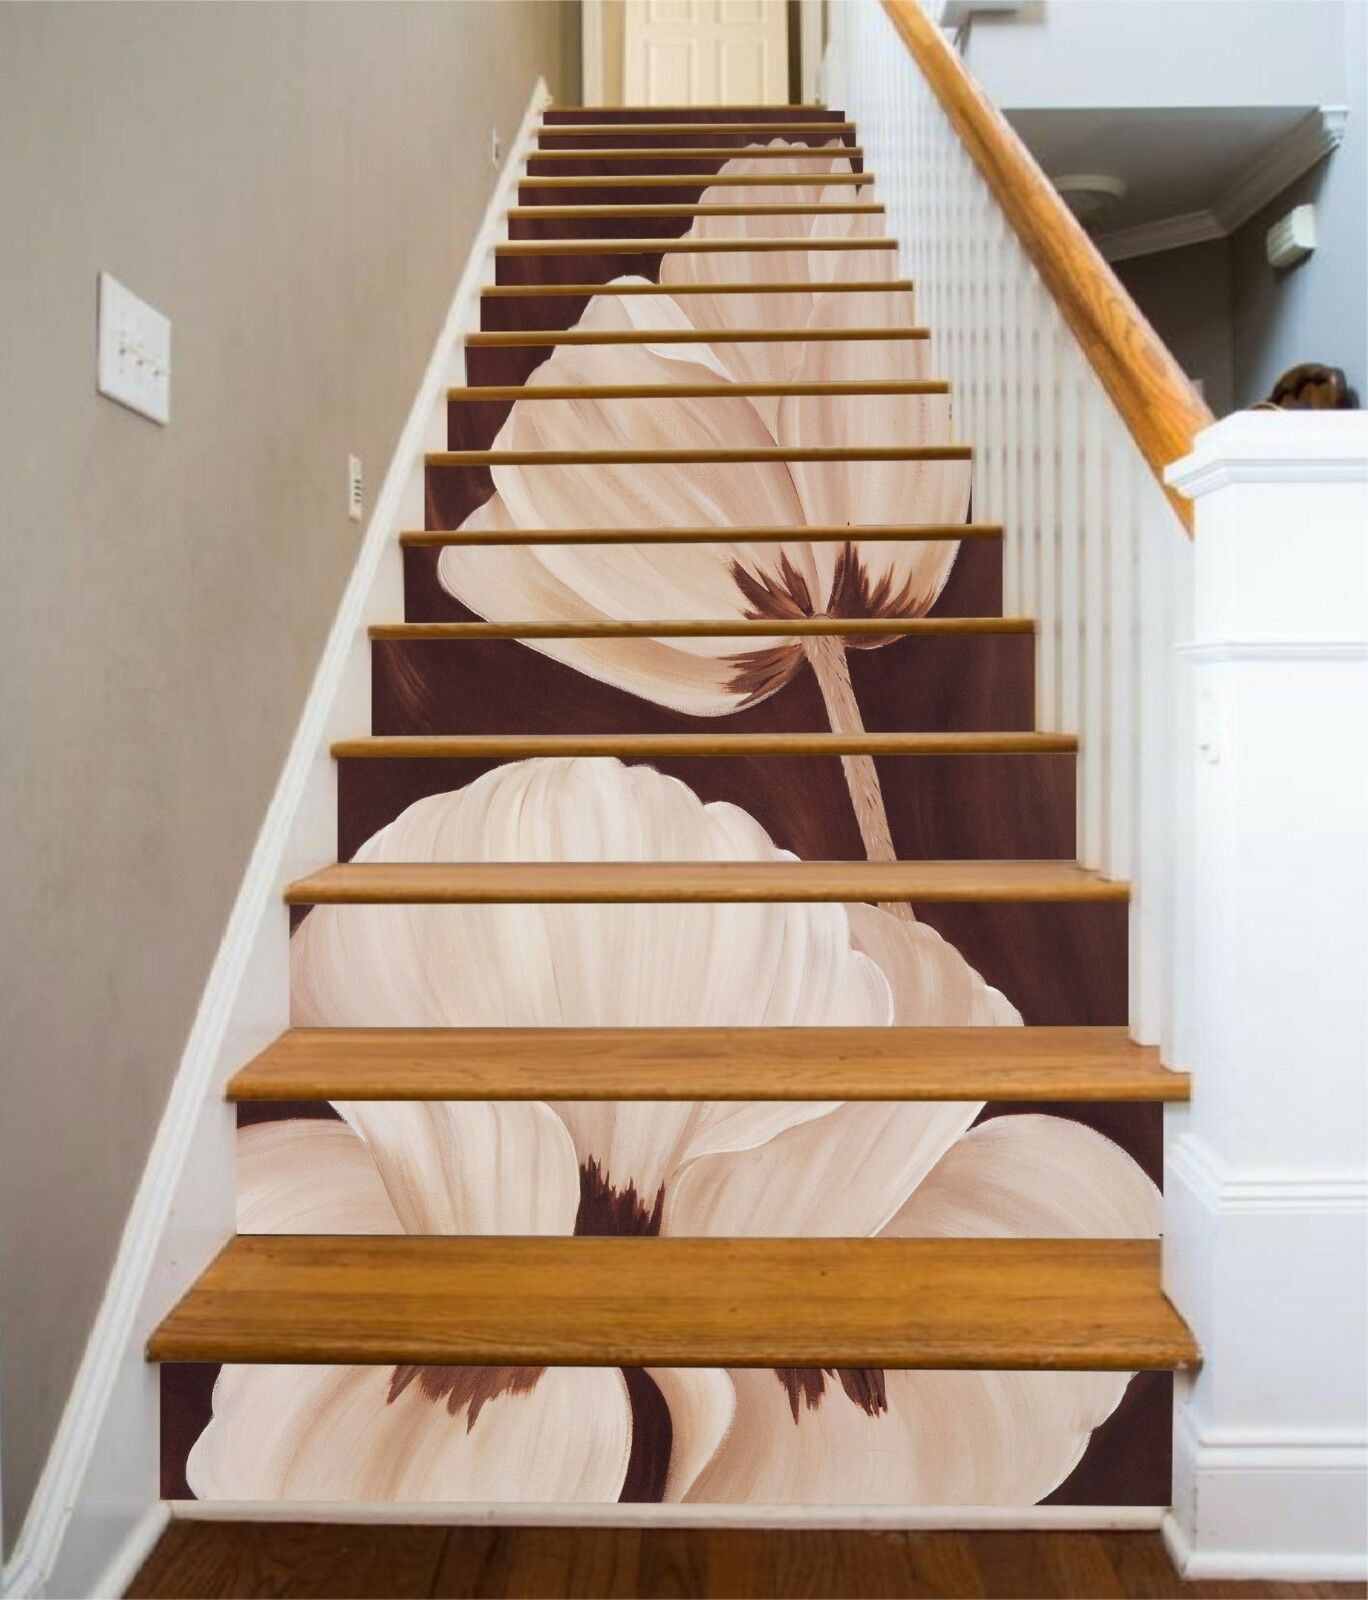 3D Graceful Flowers Stair Risers Decoration Photo Mural Vinyl Decal Wallpaper UK